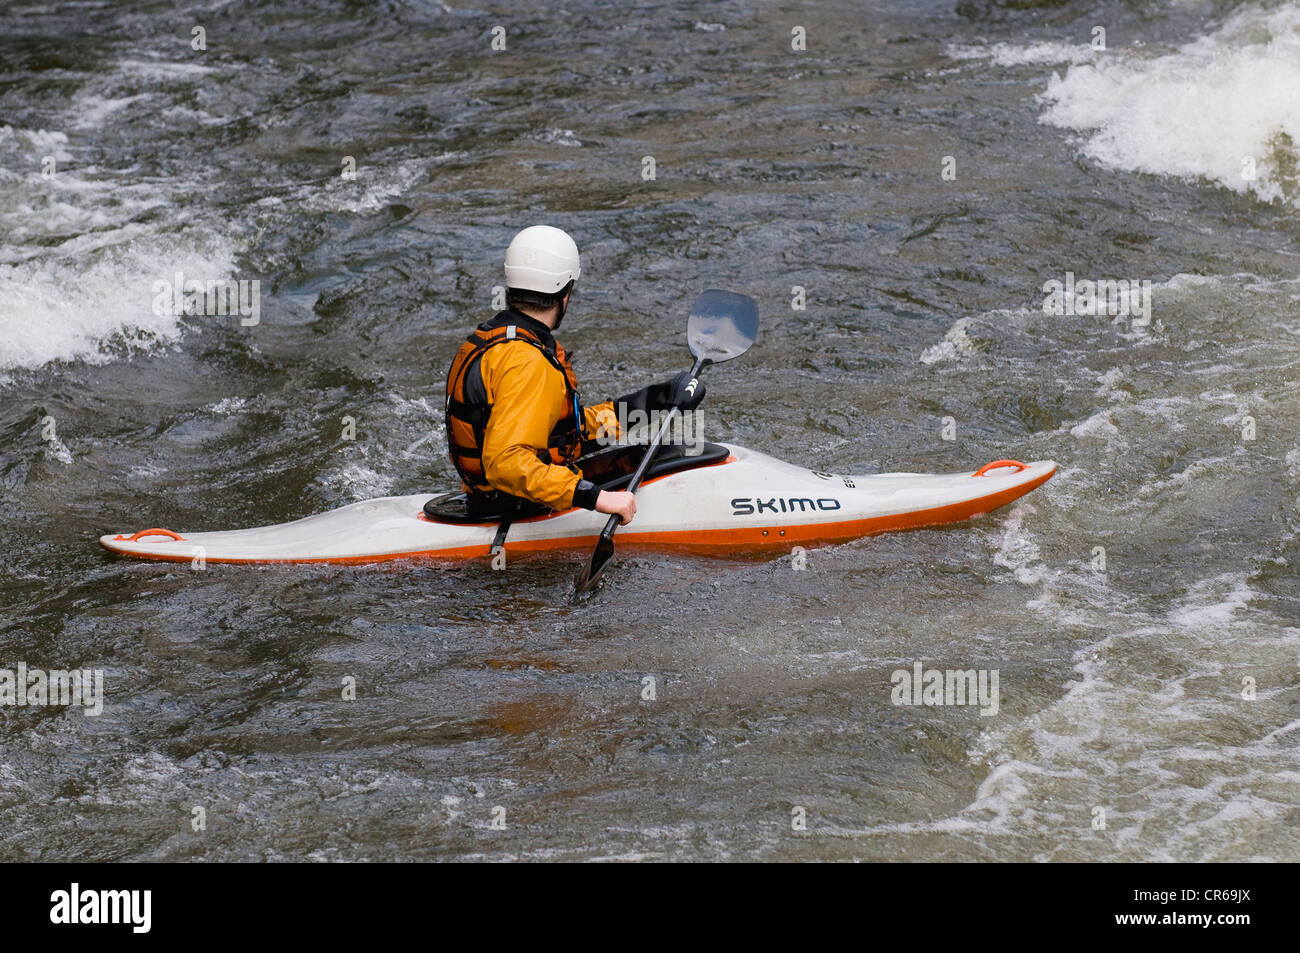 Whitewater kayaker maneuvering through the rapids - Stock Image